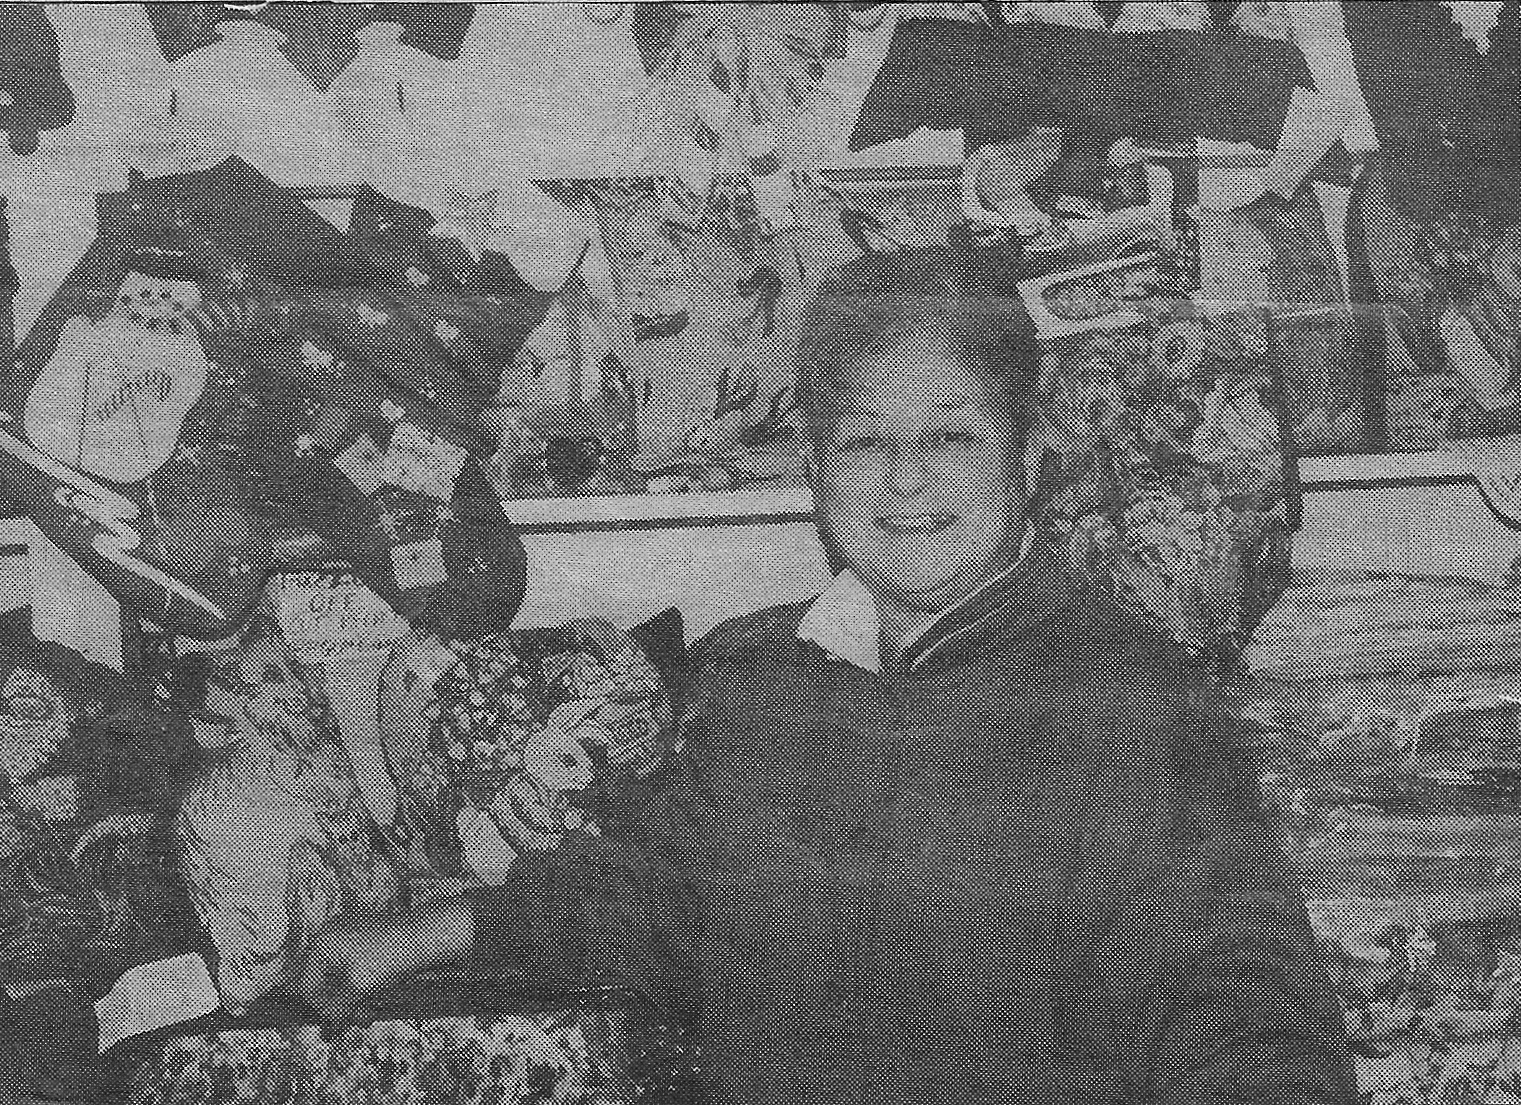 Anne's Linens (1419 119th Street) had been on 119th Street for 39 years when owner Anne Daniele posed for this 1994 photo, making it one of the oldest businesses on the street at the time. (Linda Rich photograph)